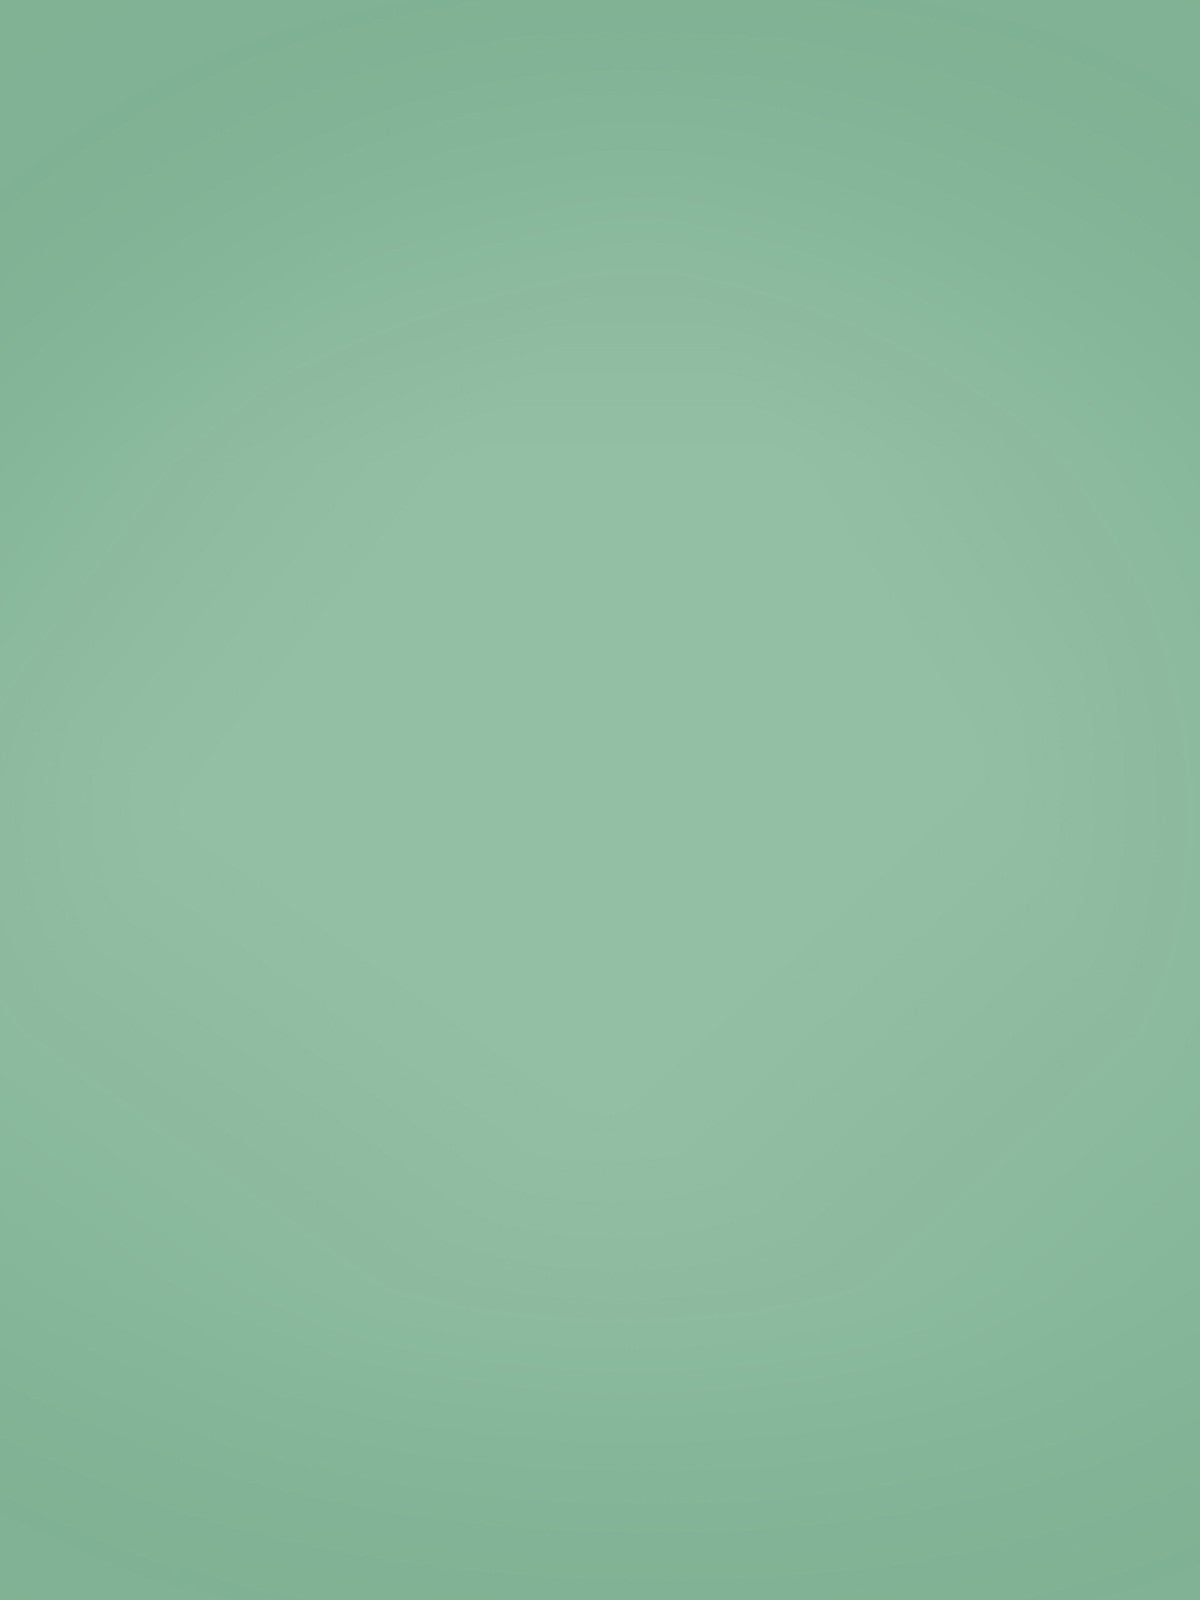 Green Solid Photo Background / 9108